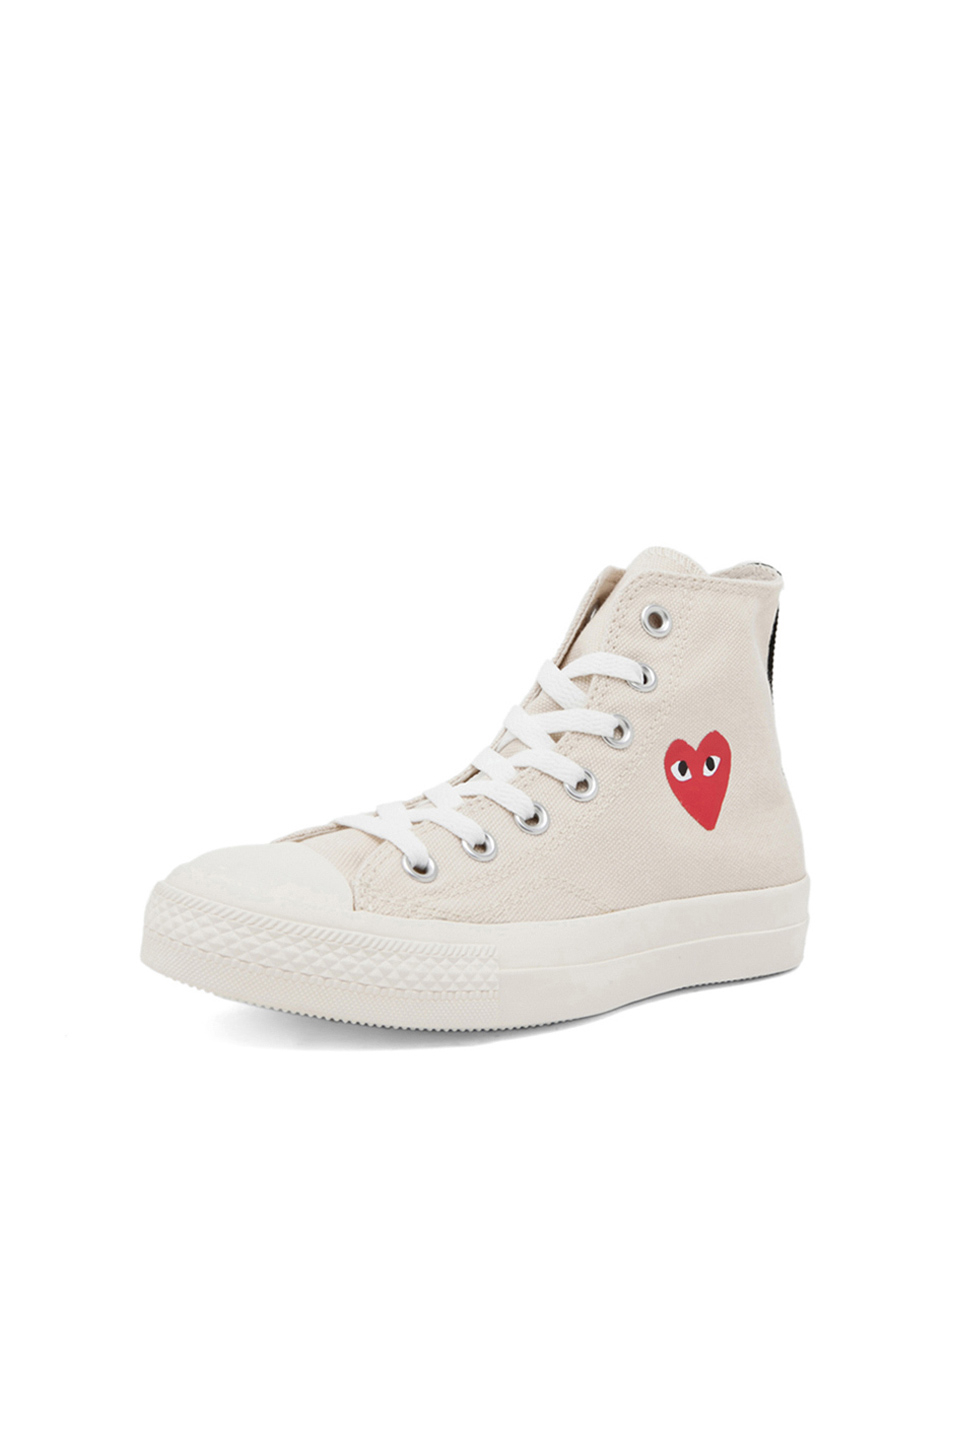 fc82df682834 Lyst - Play Comme des Garçons Converse High Top Canvas Sneakers in White